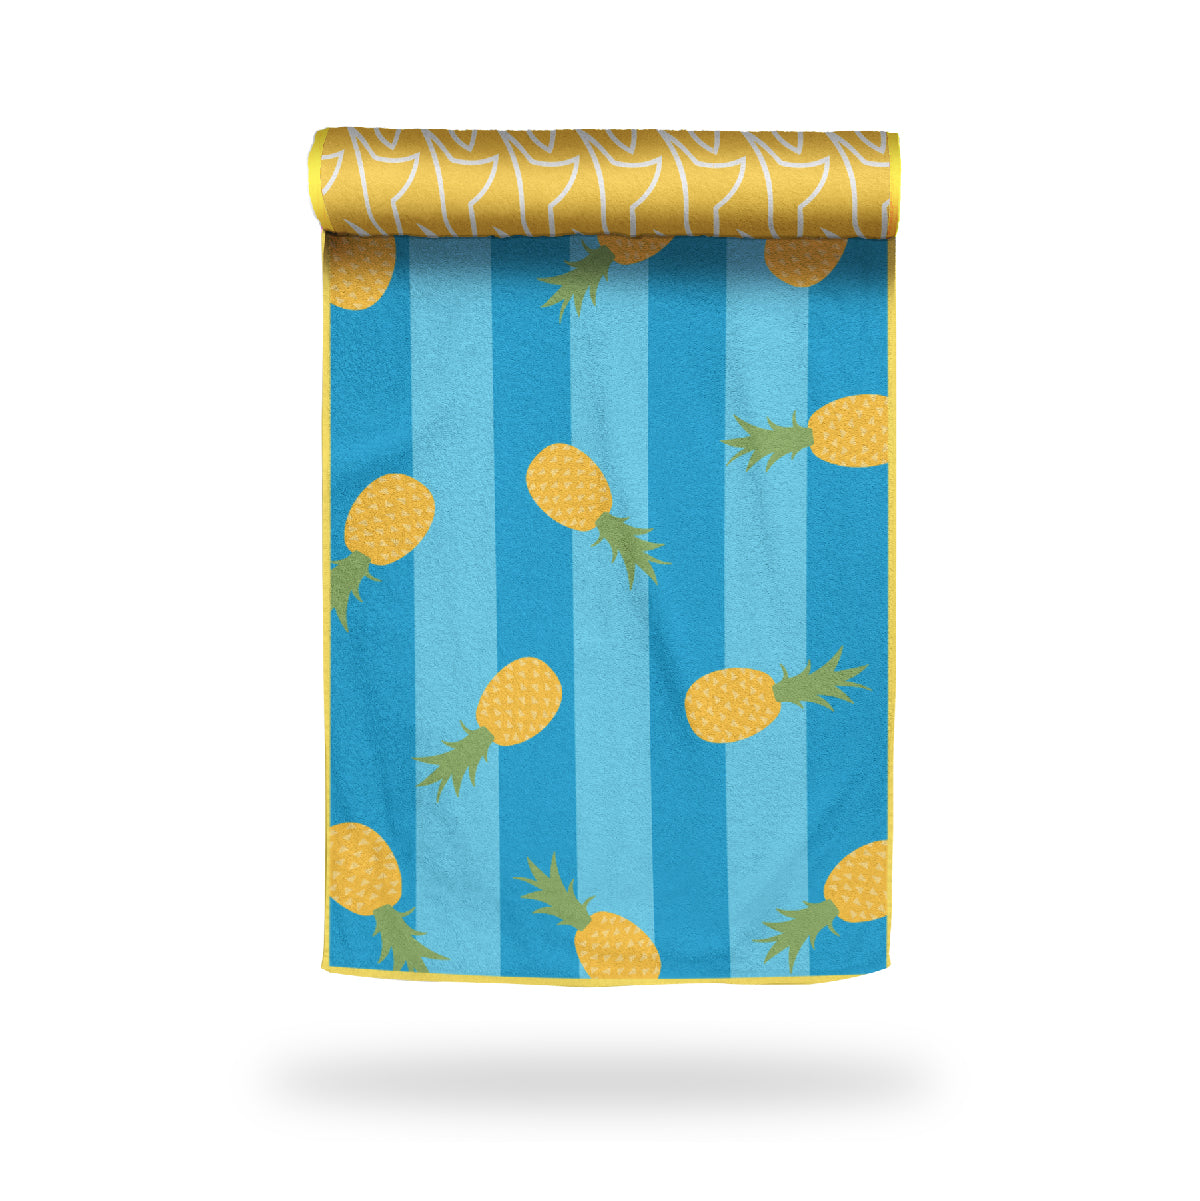 [SALE] Pineapple Sand Free Beach Towel